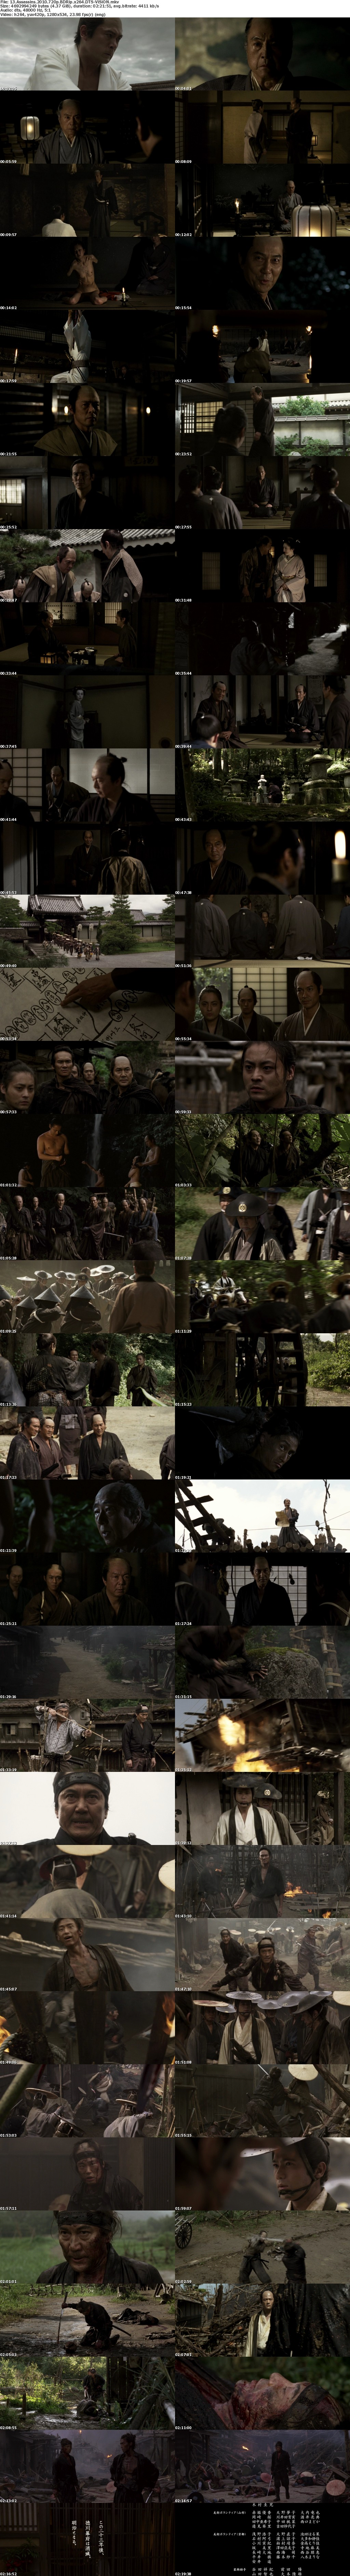 13 Assassins 2010 720p BDRip x264 DTS-ViSiON